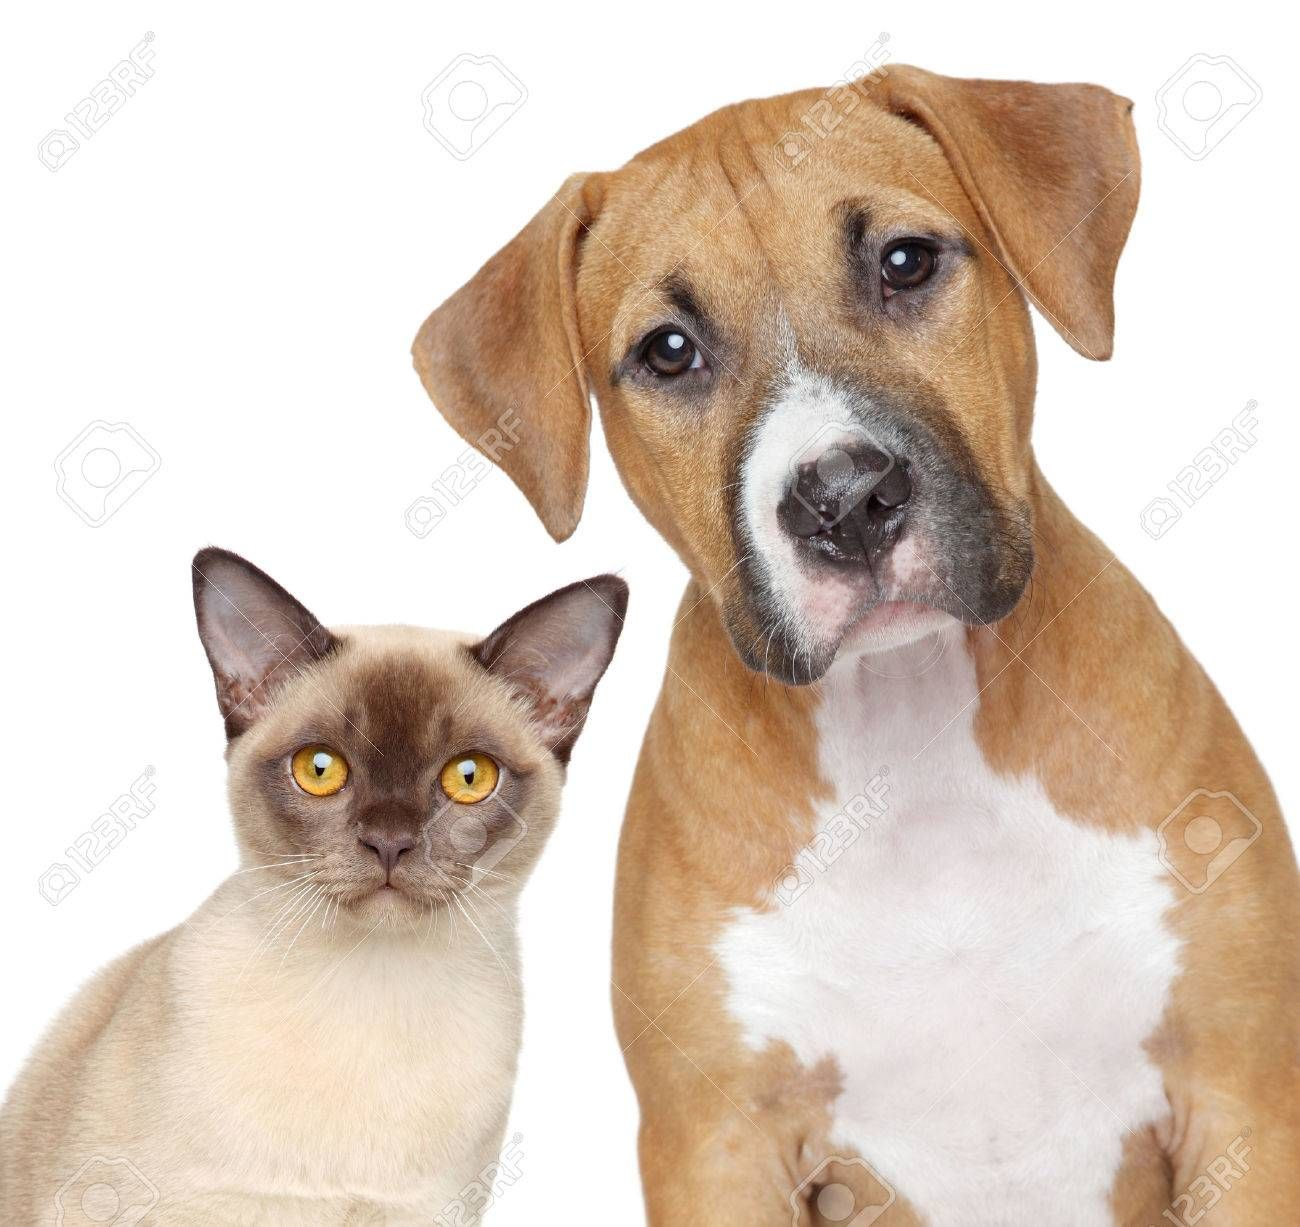 Burmese cat and Staffordshire Terrier portrait on white background , #Sponsored, #Staffordshire, #cat, #Burmese, #Terrier, #background